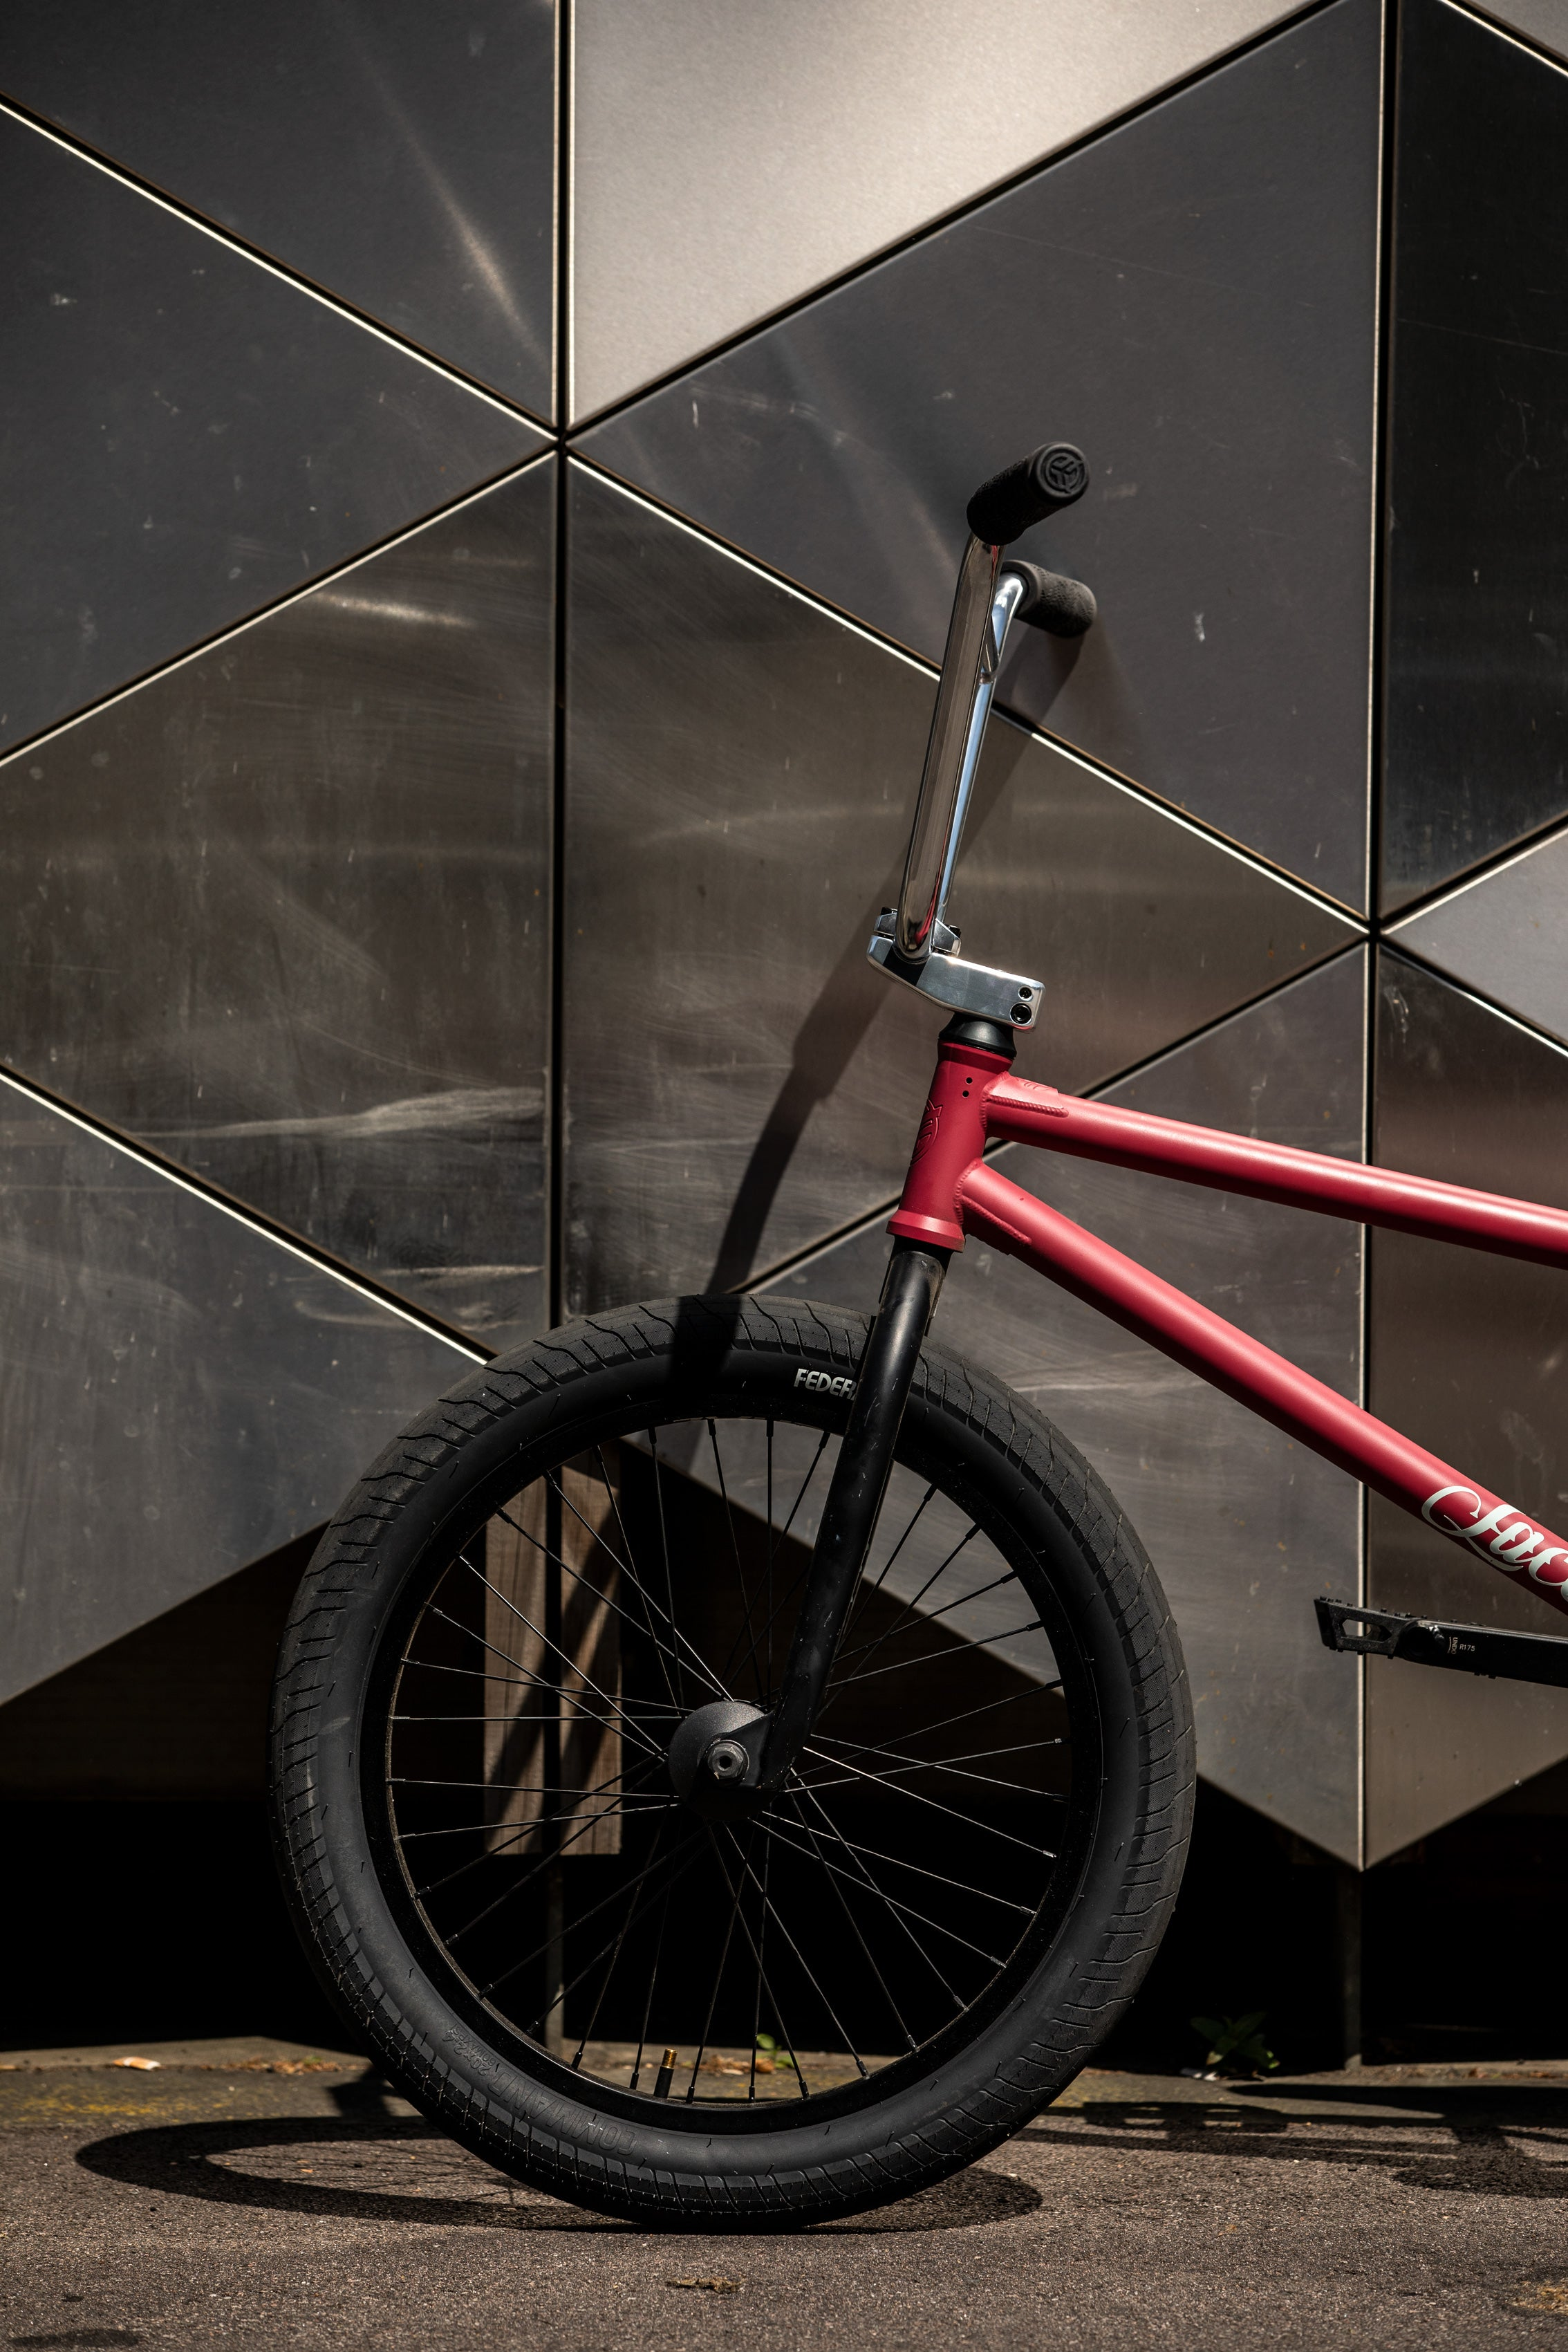 federal bikes bmx Lacey cranberry 2020 bike check